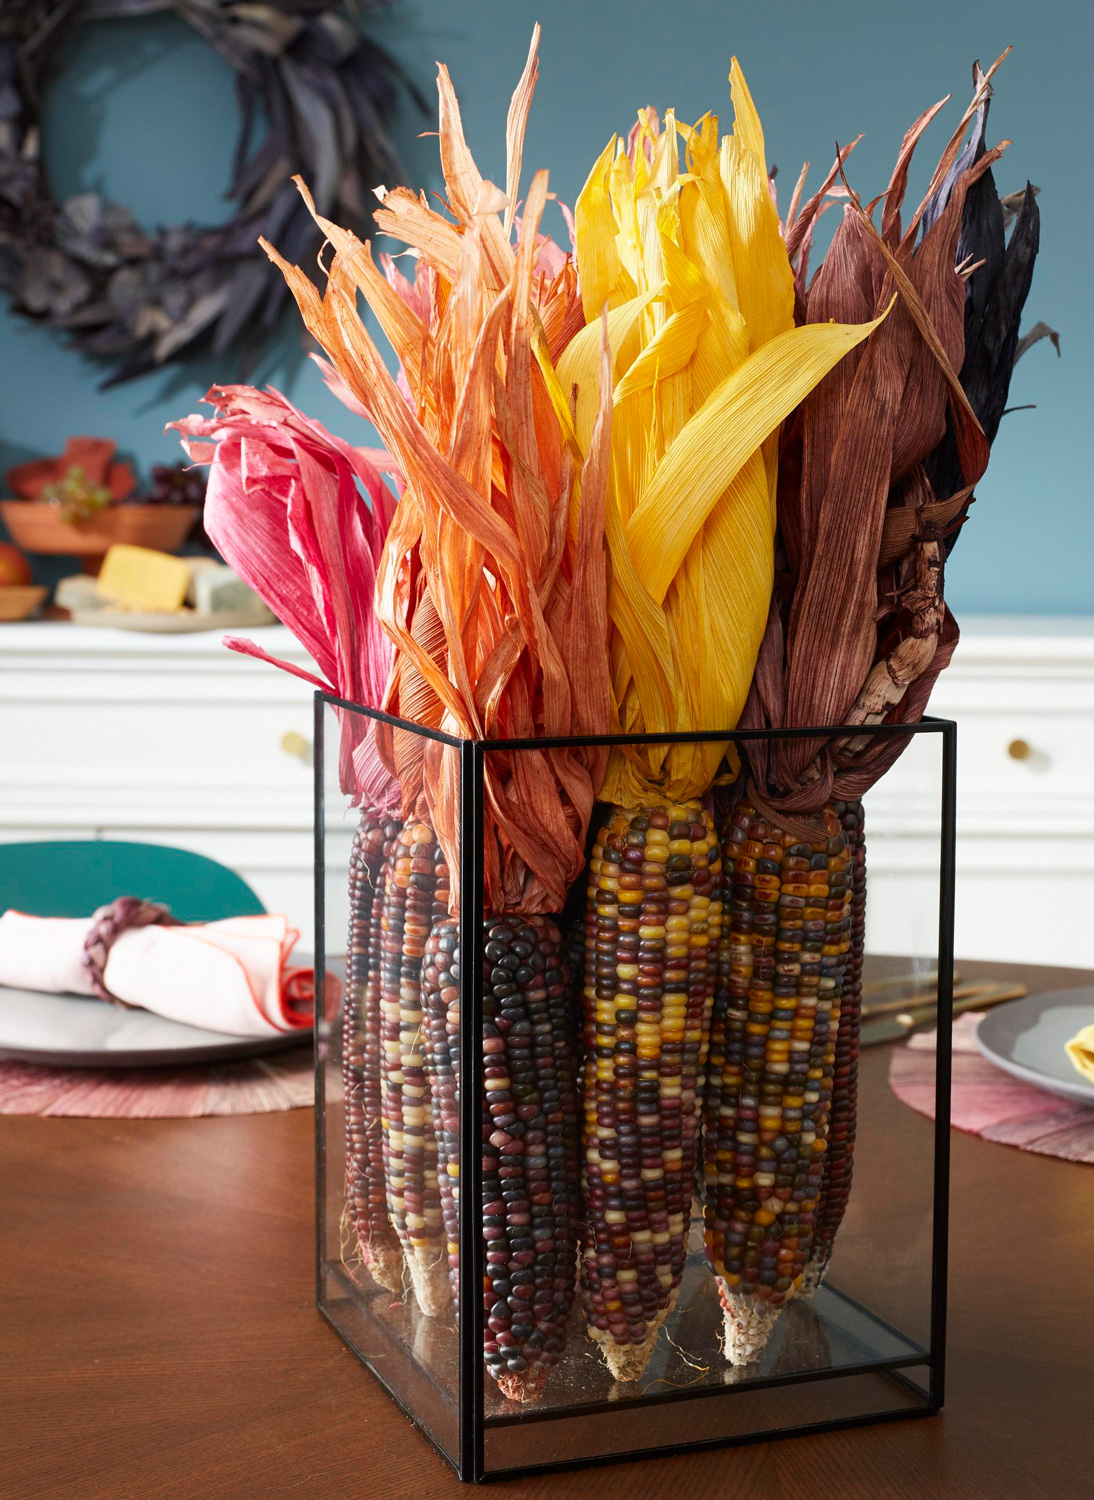 Corn husk bouquet